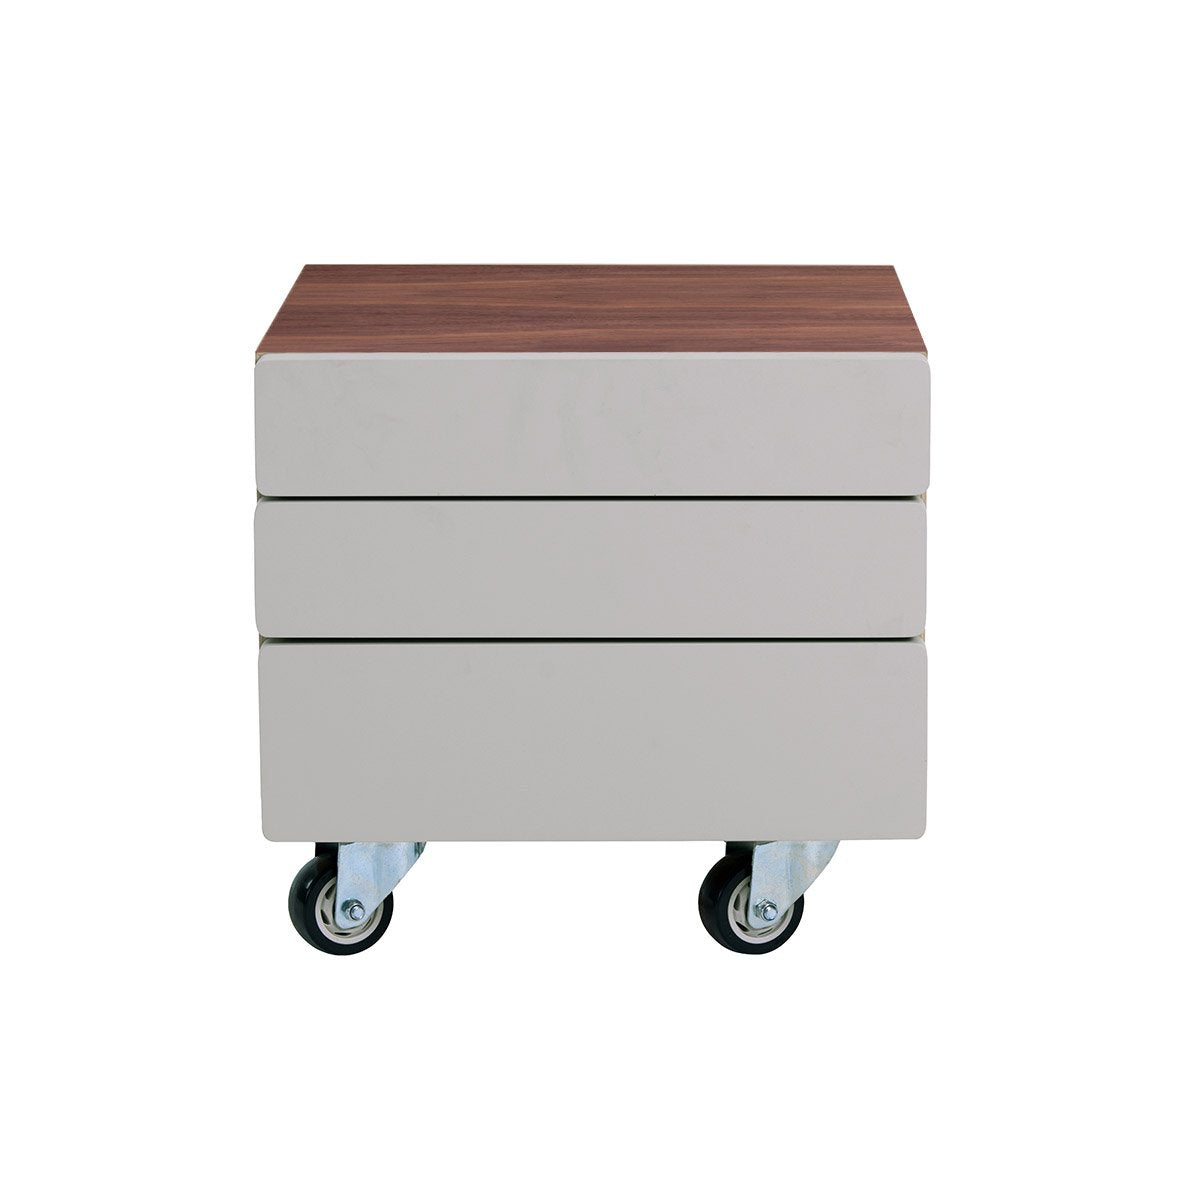 [FES5505LGREY] Kuutio Side Table